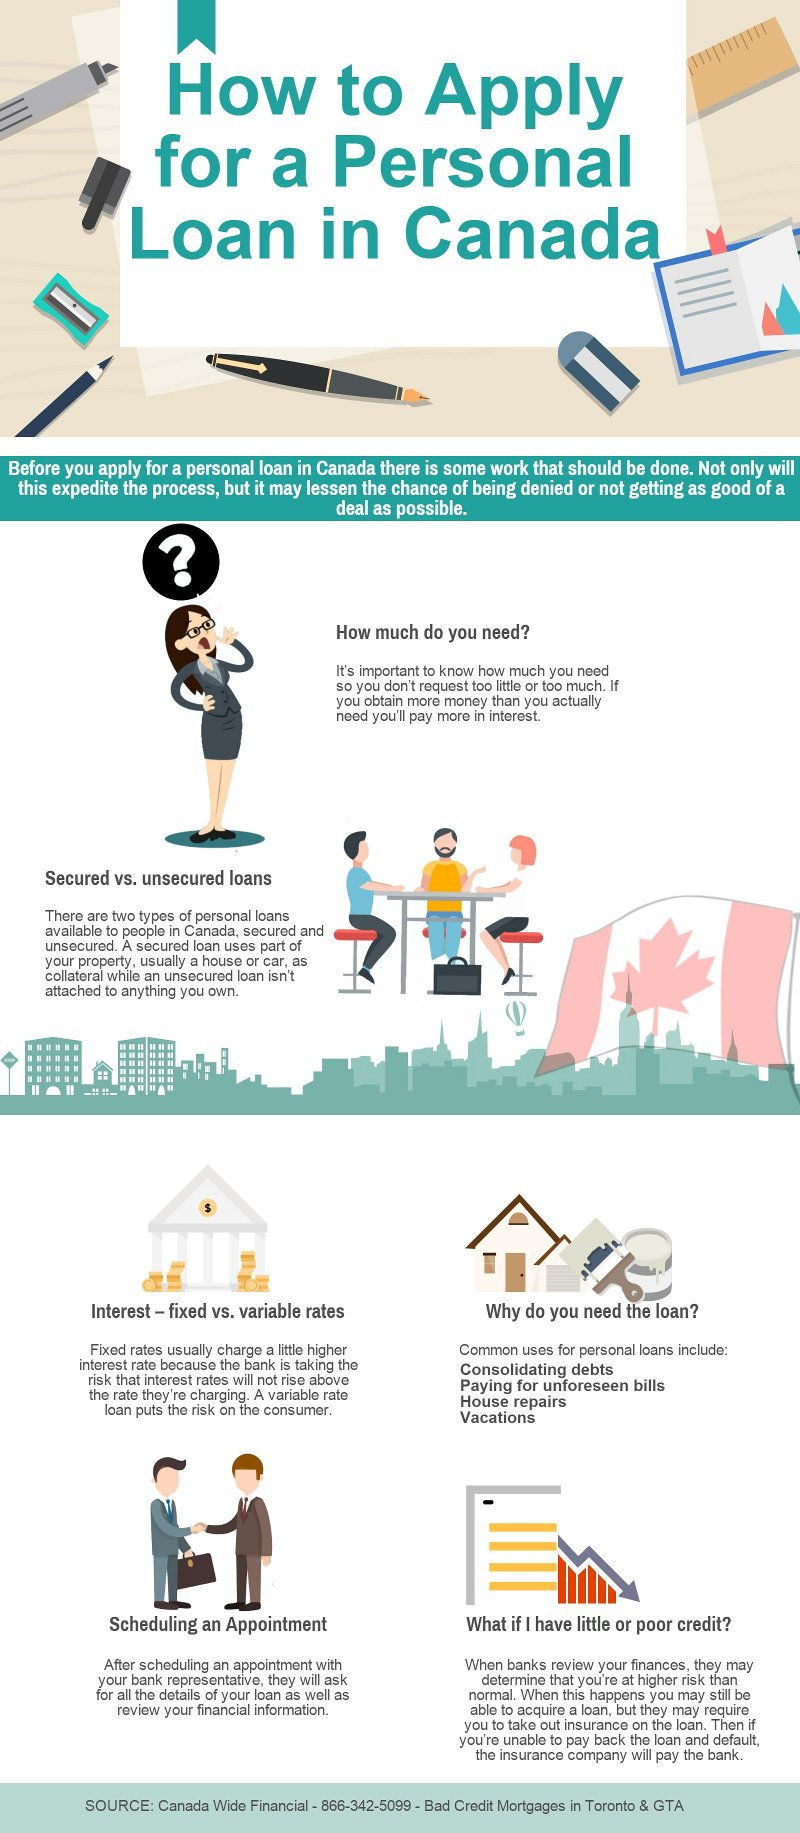 How to Apply for a Personal Loan in Canada – Infographic